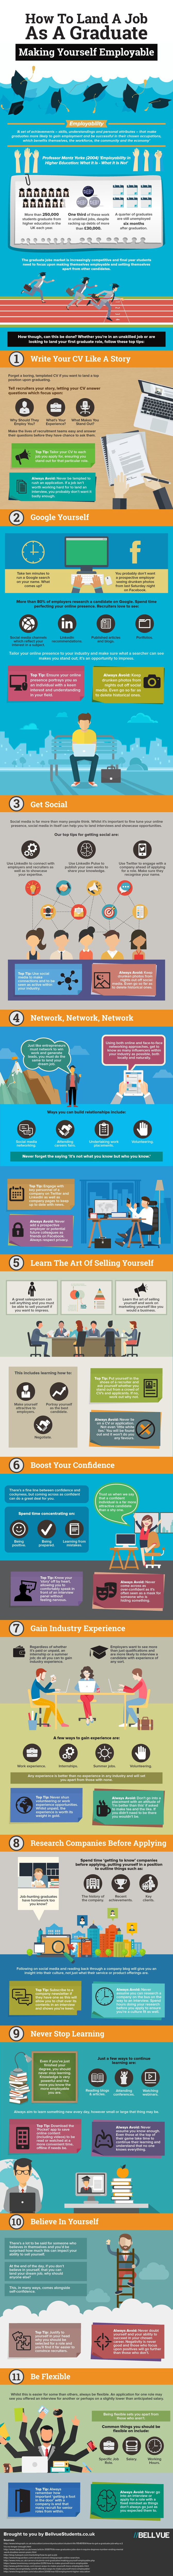 @resumedesignco ResumeDesignCo.com Making Yourself Employable: How To Land A Job As A Graduate #Infographic #Career #Job